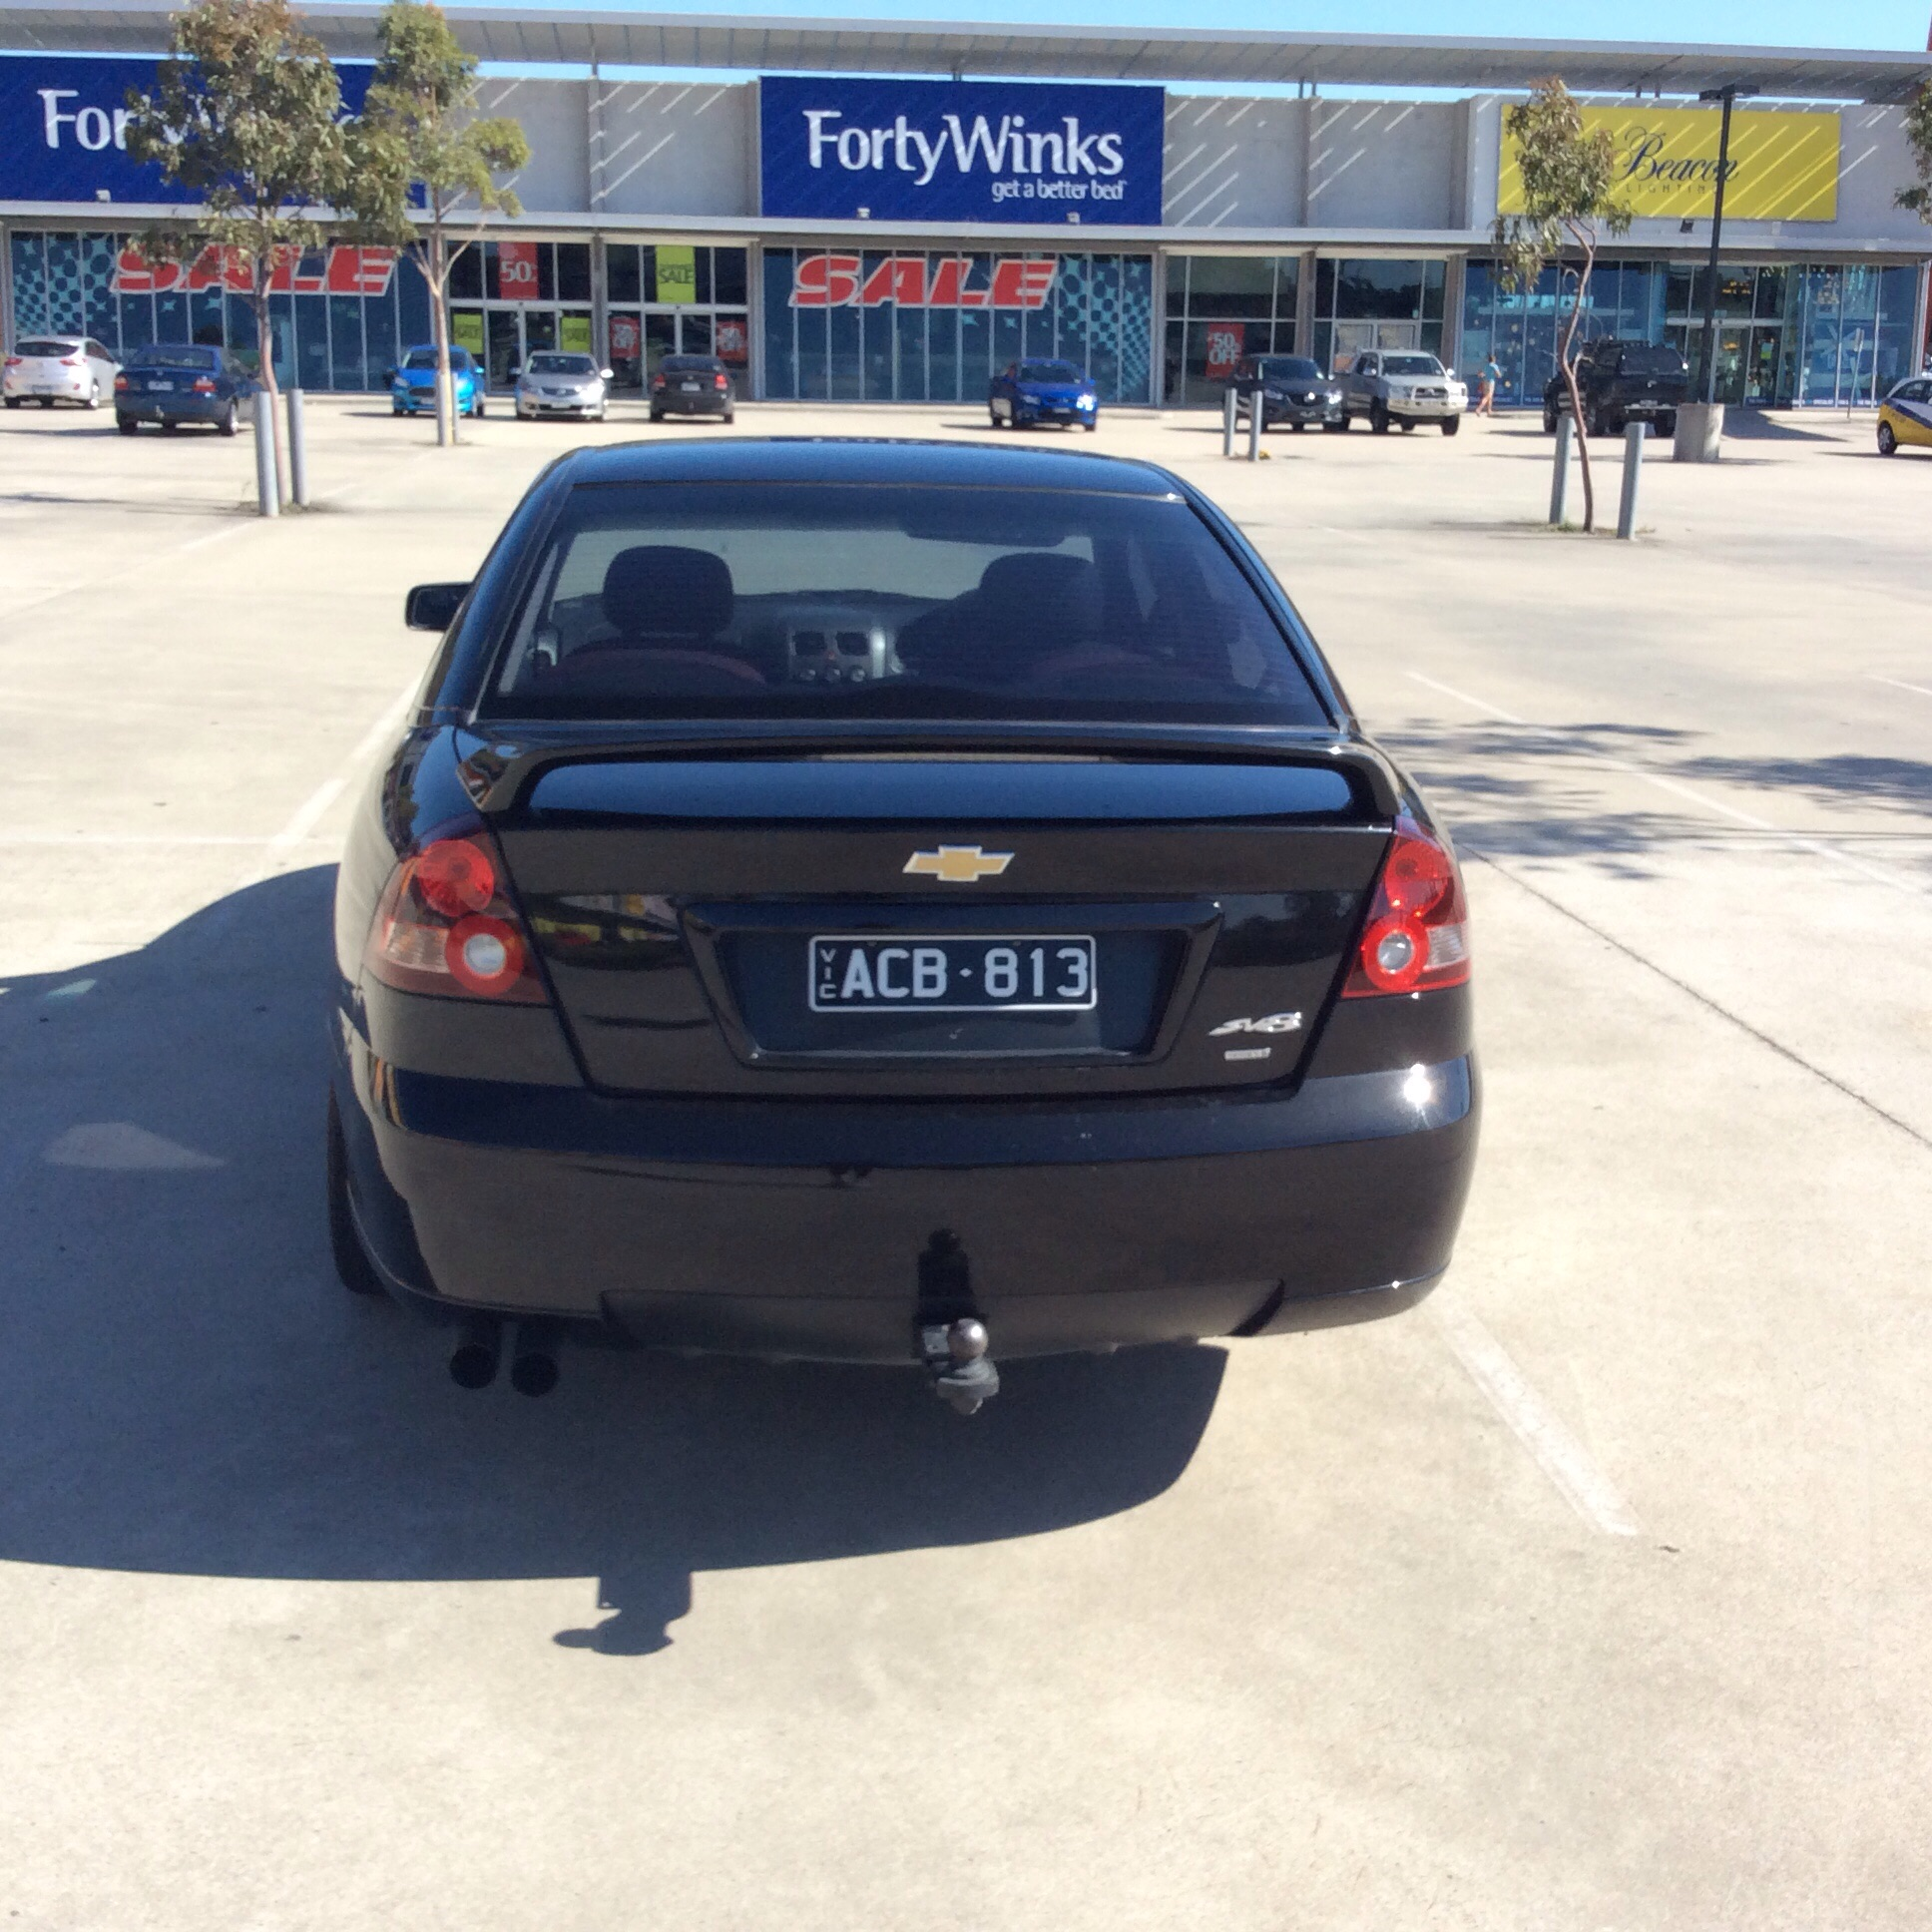 2002 Holden Commodore Car Valuation: 2004 Holden Commodore For Sale Or Swap